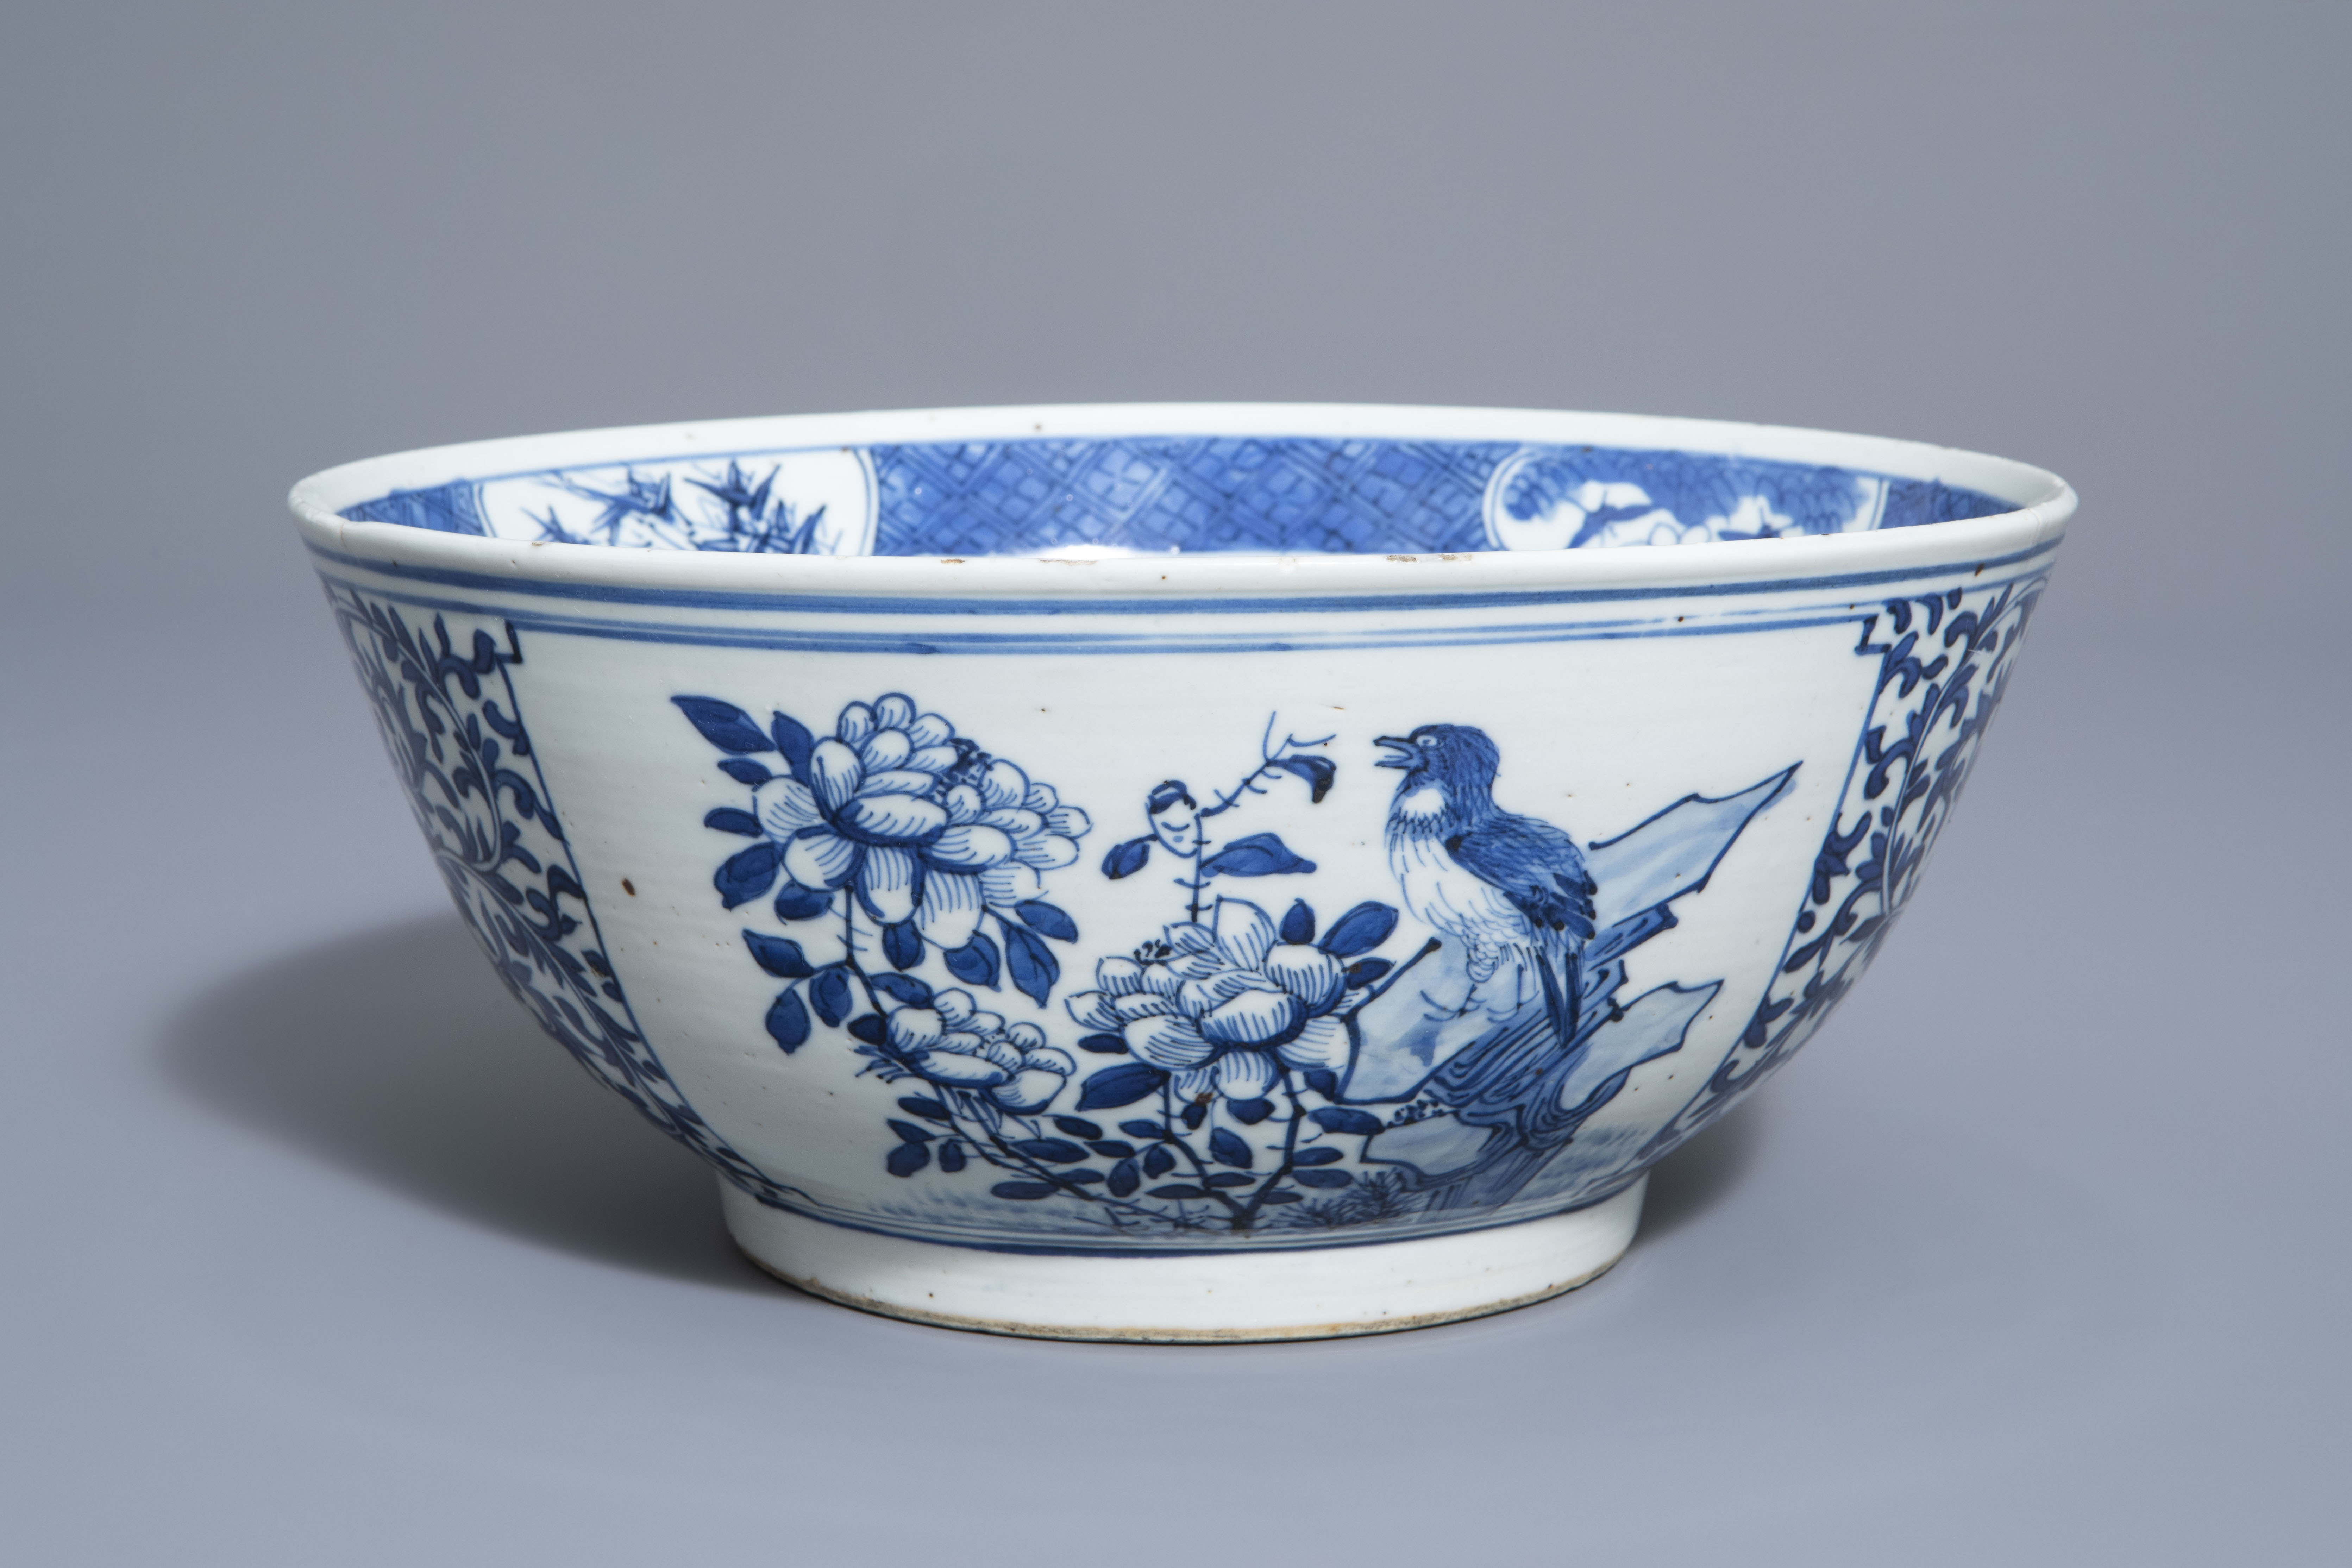 A Chinese blue and white bowl with birds and flowers, 19th C.